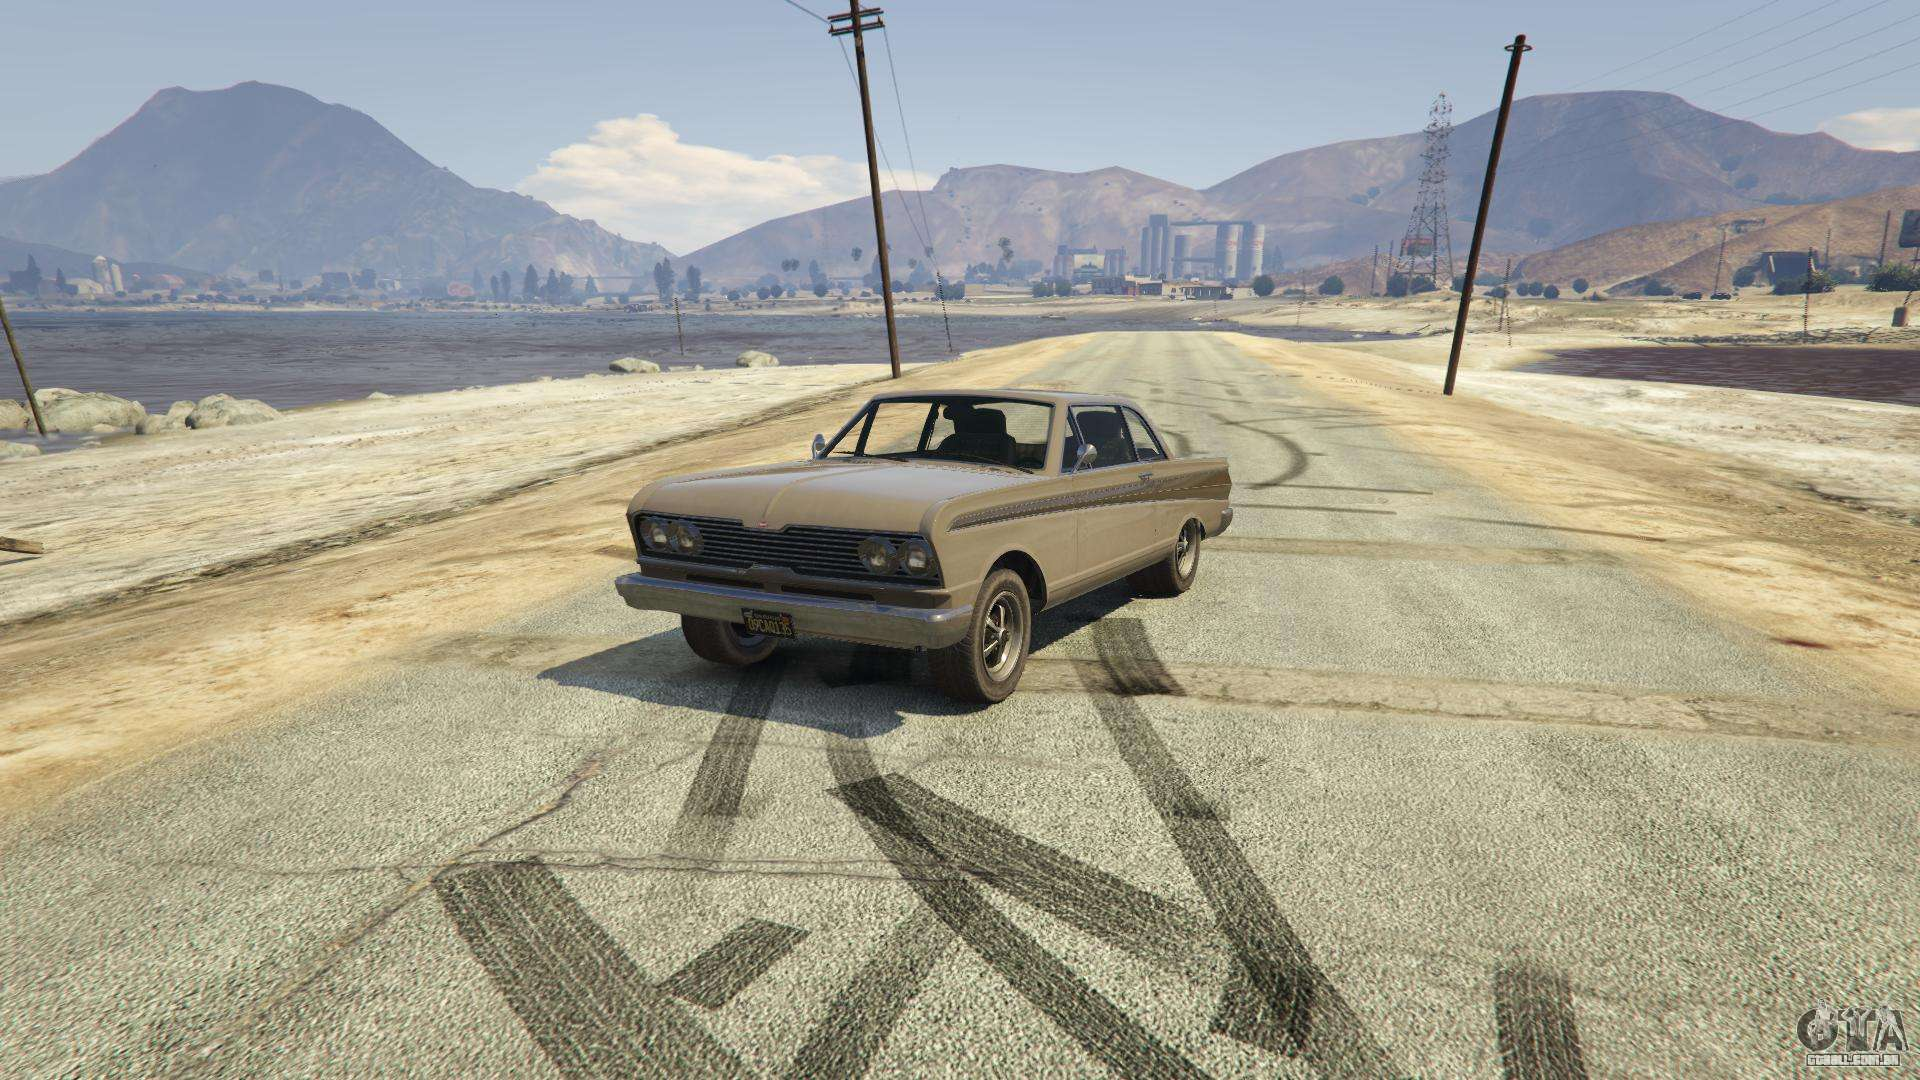 Vapid Blade de GTA 5 - vista frontal